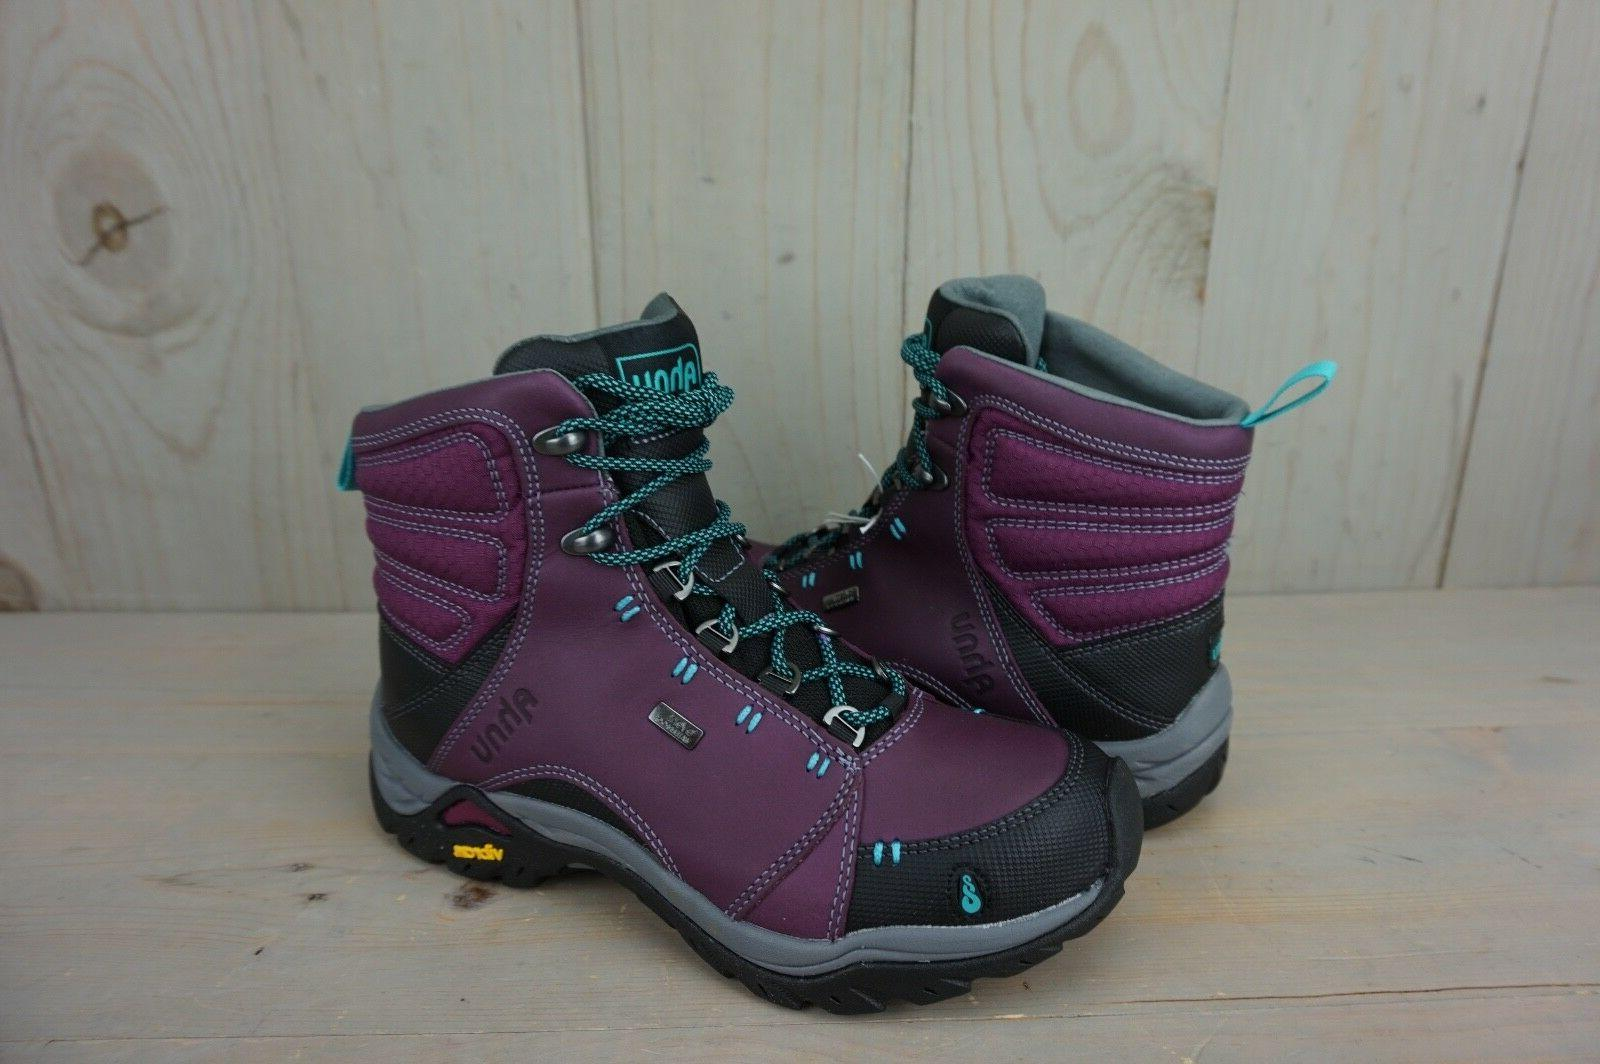 AHNU MONTARA   WP AMETHYST SMOKE WATERPROOF HIKING   BOOTS W